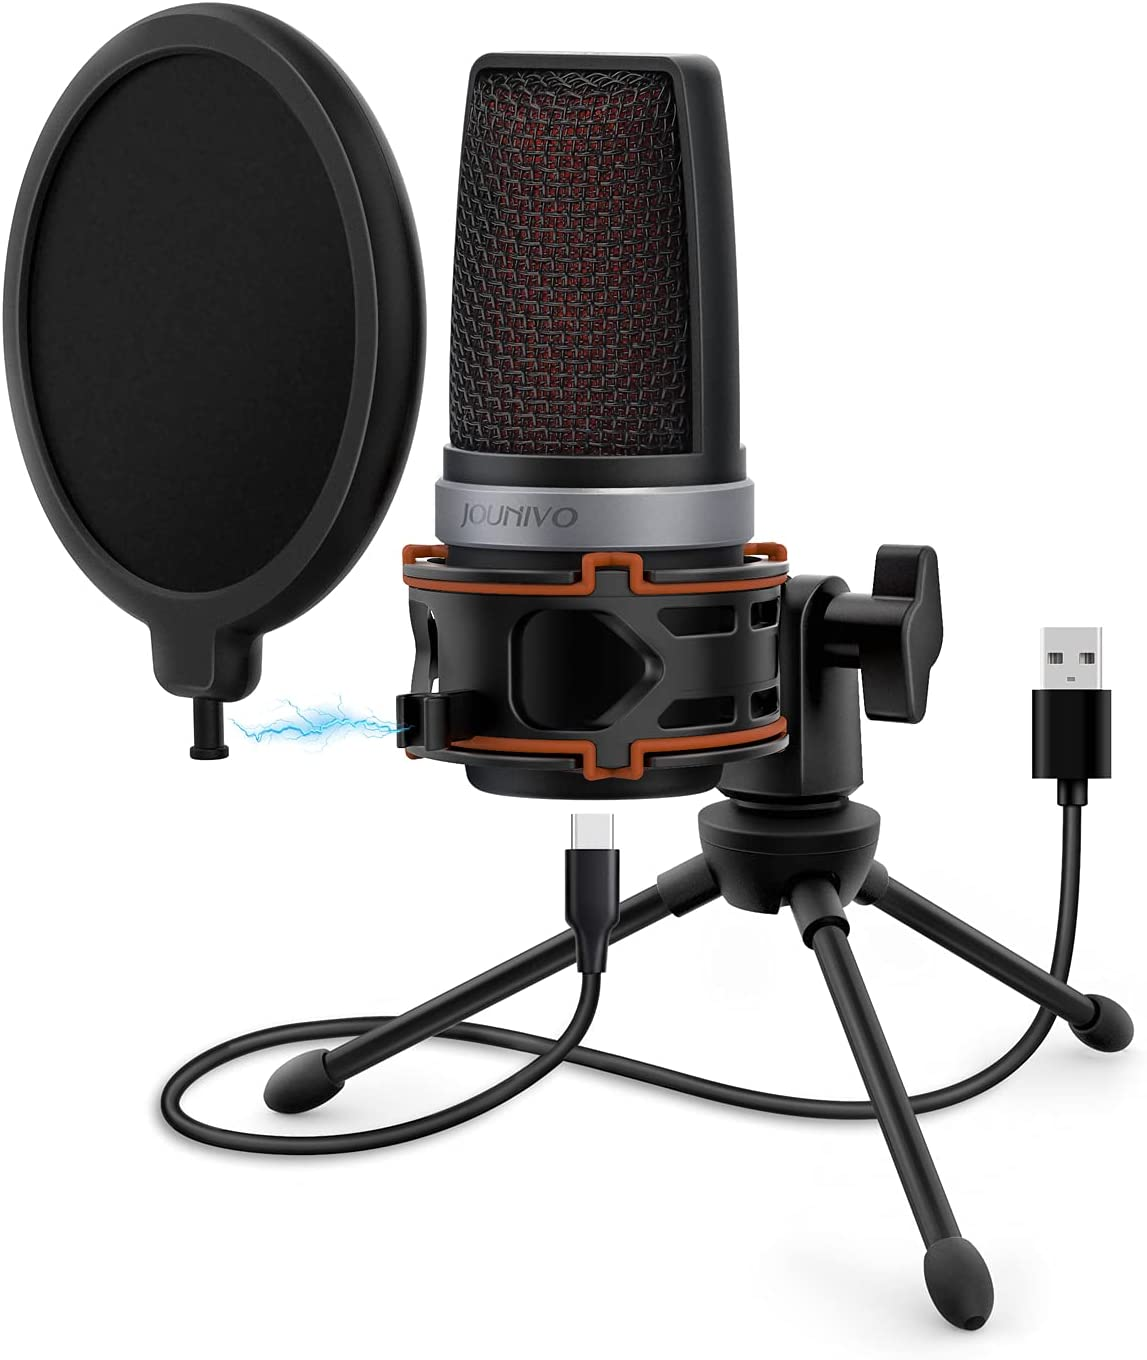 USB Computer Microphone, Cardioid Condenser Mic for Desktop PC/Laptop with Pop Filter, Anti-Vibration Shock Mount, Mute Button, for Online Gaming, Vocals, YouTube, Podcasting, Streaming - JV906